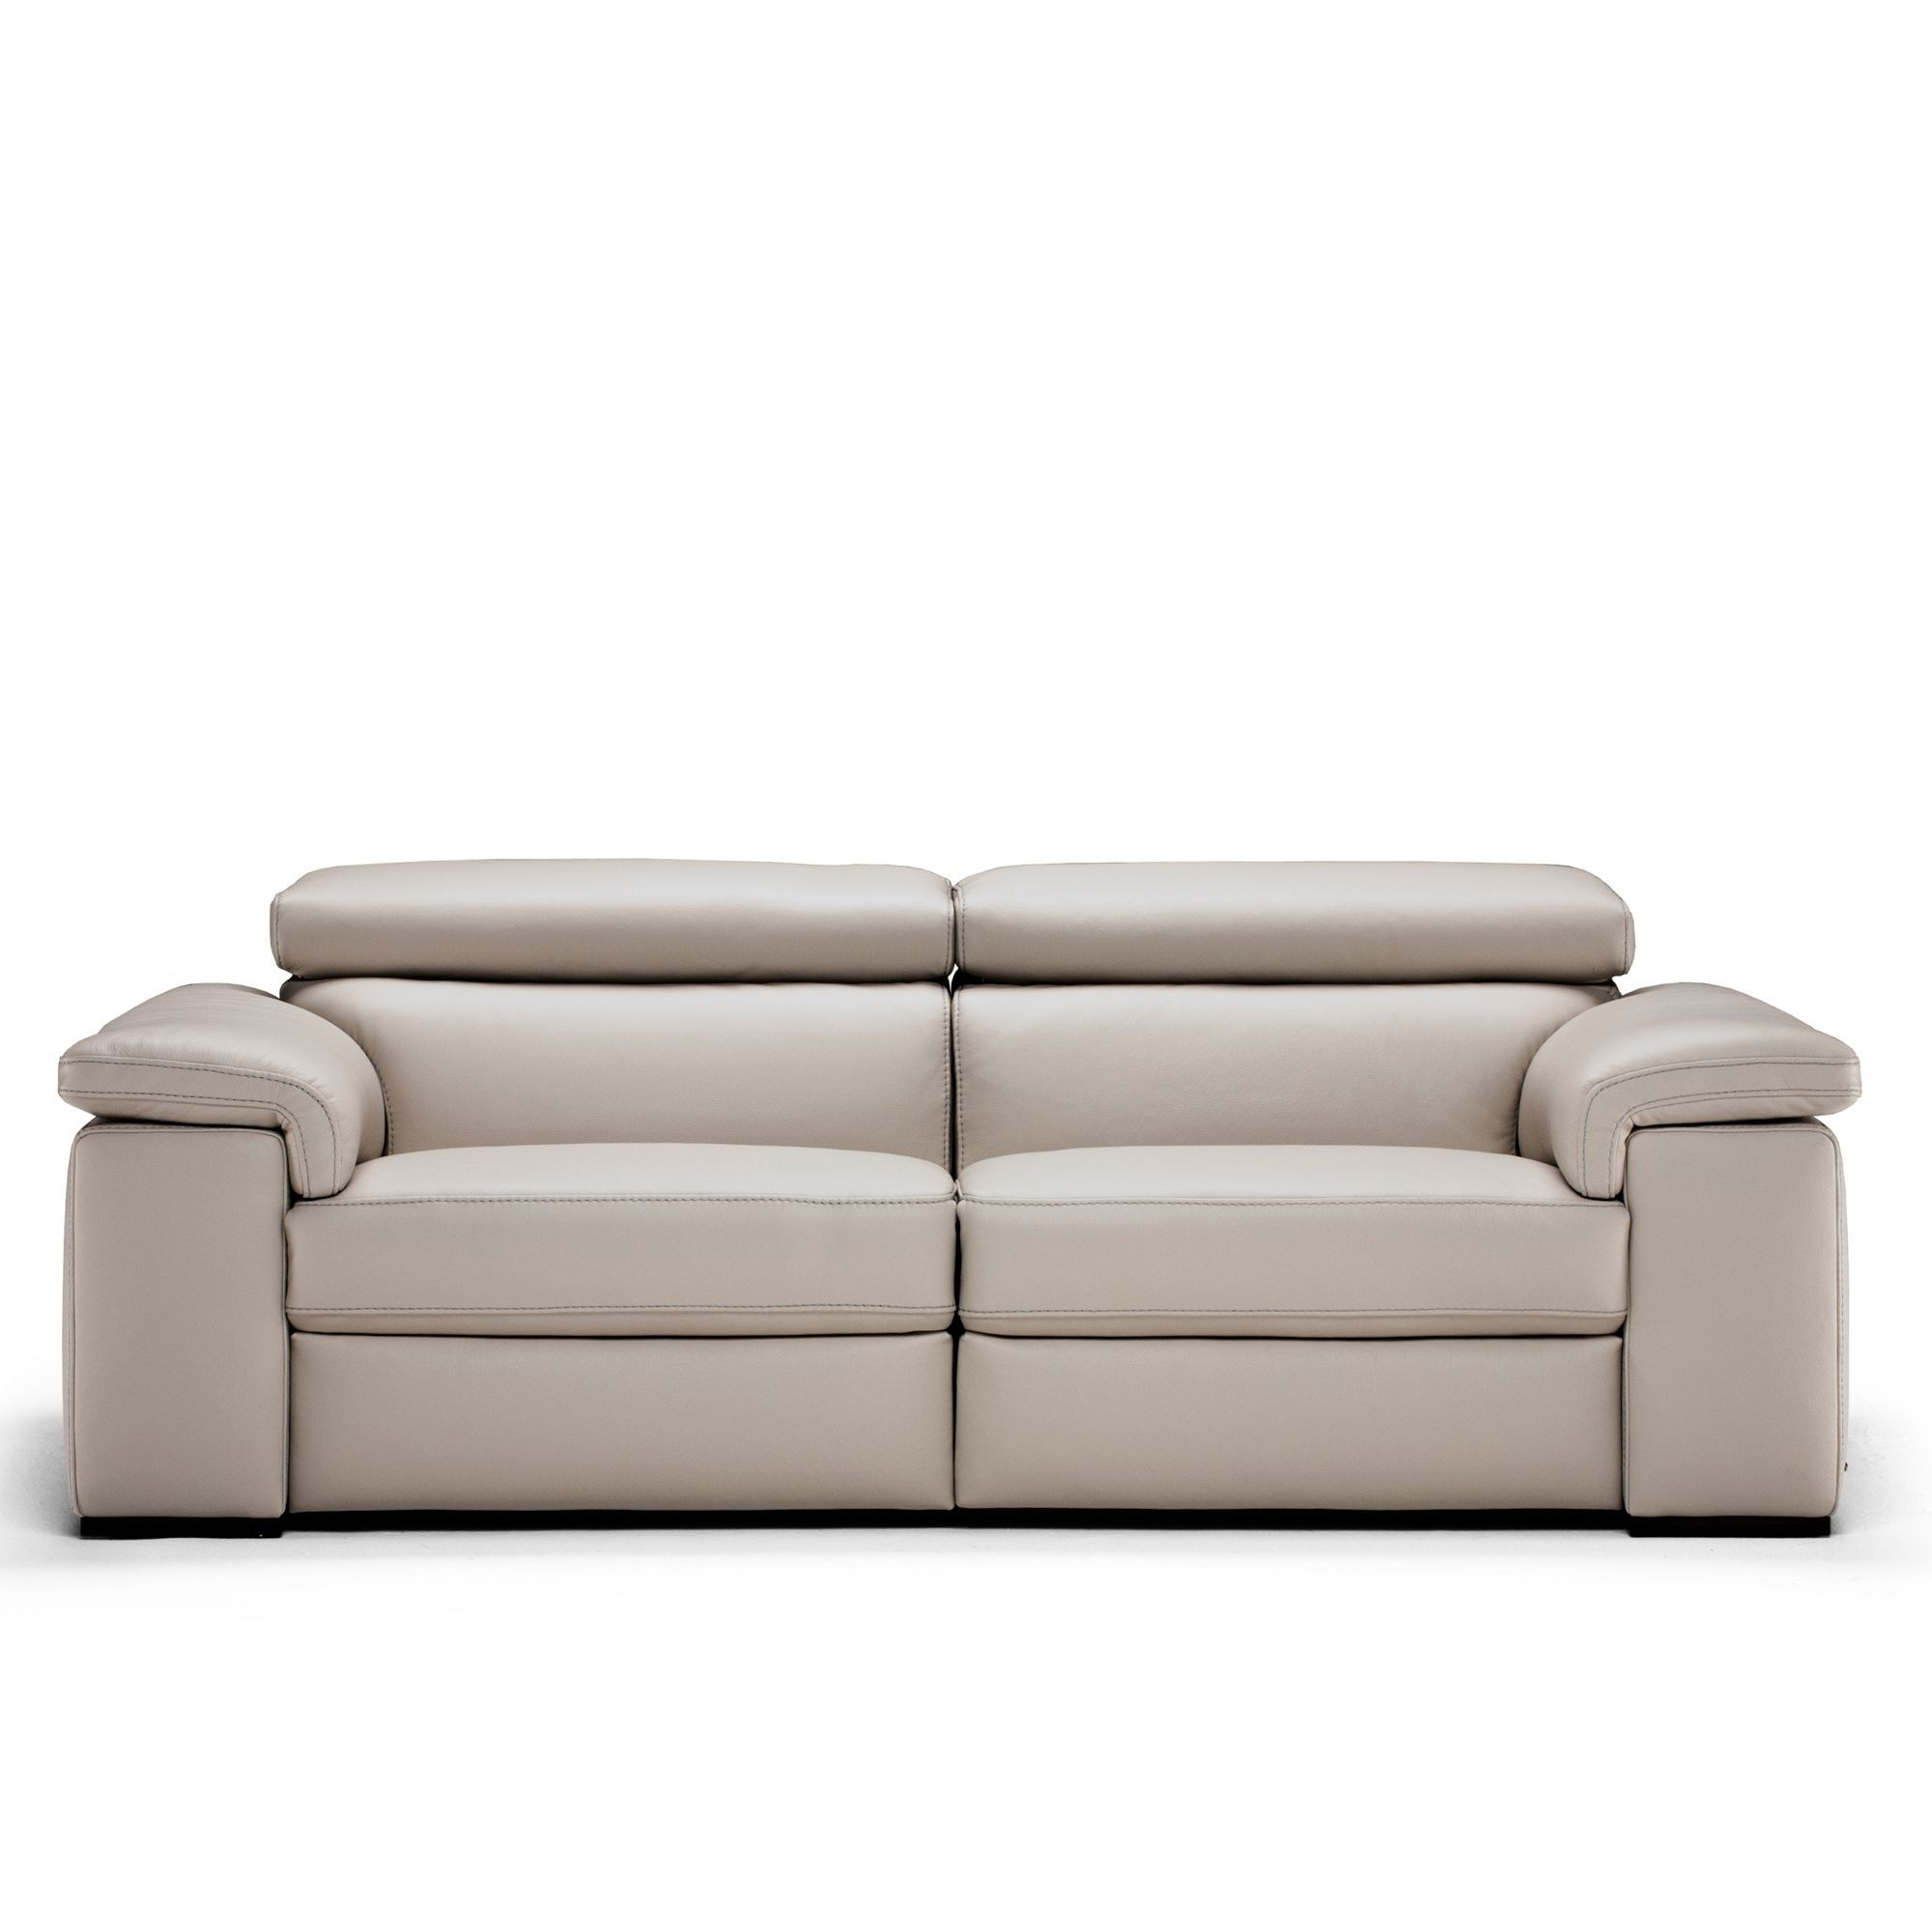 Natuzzi editions moretta large silver grey leather power recliner sofa ebay - Sofas natuzzi ...